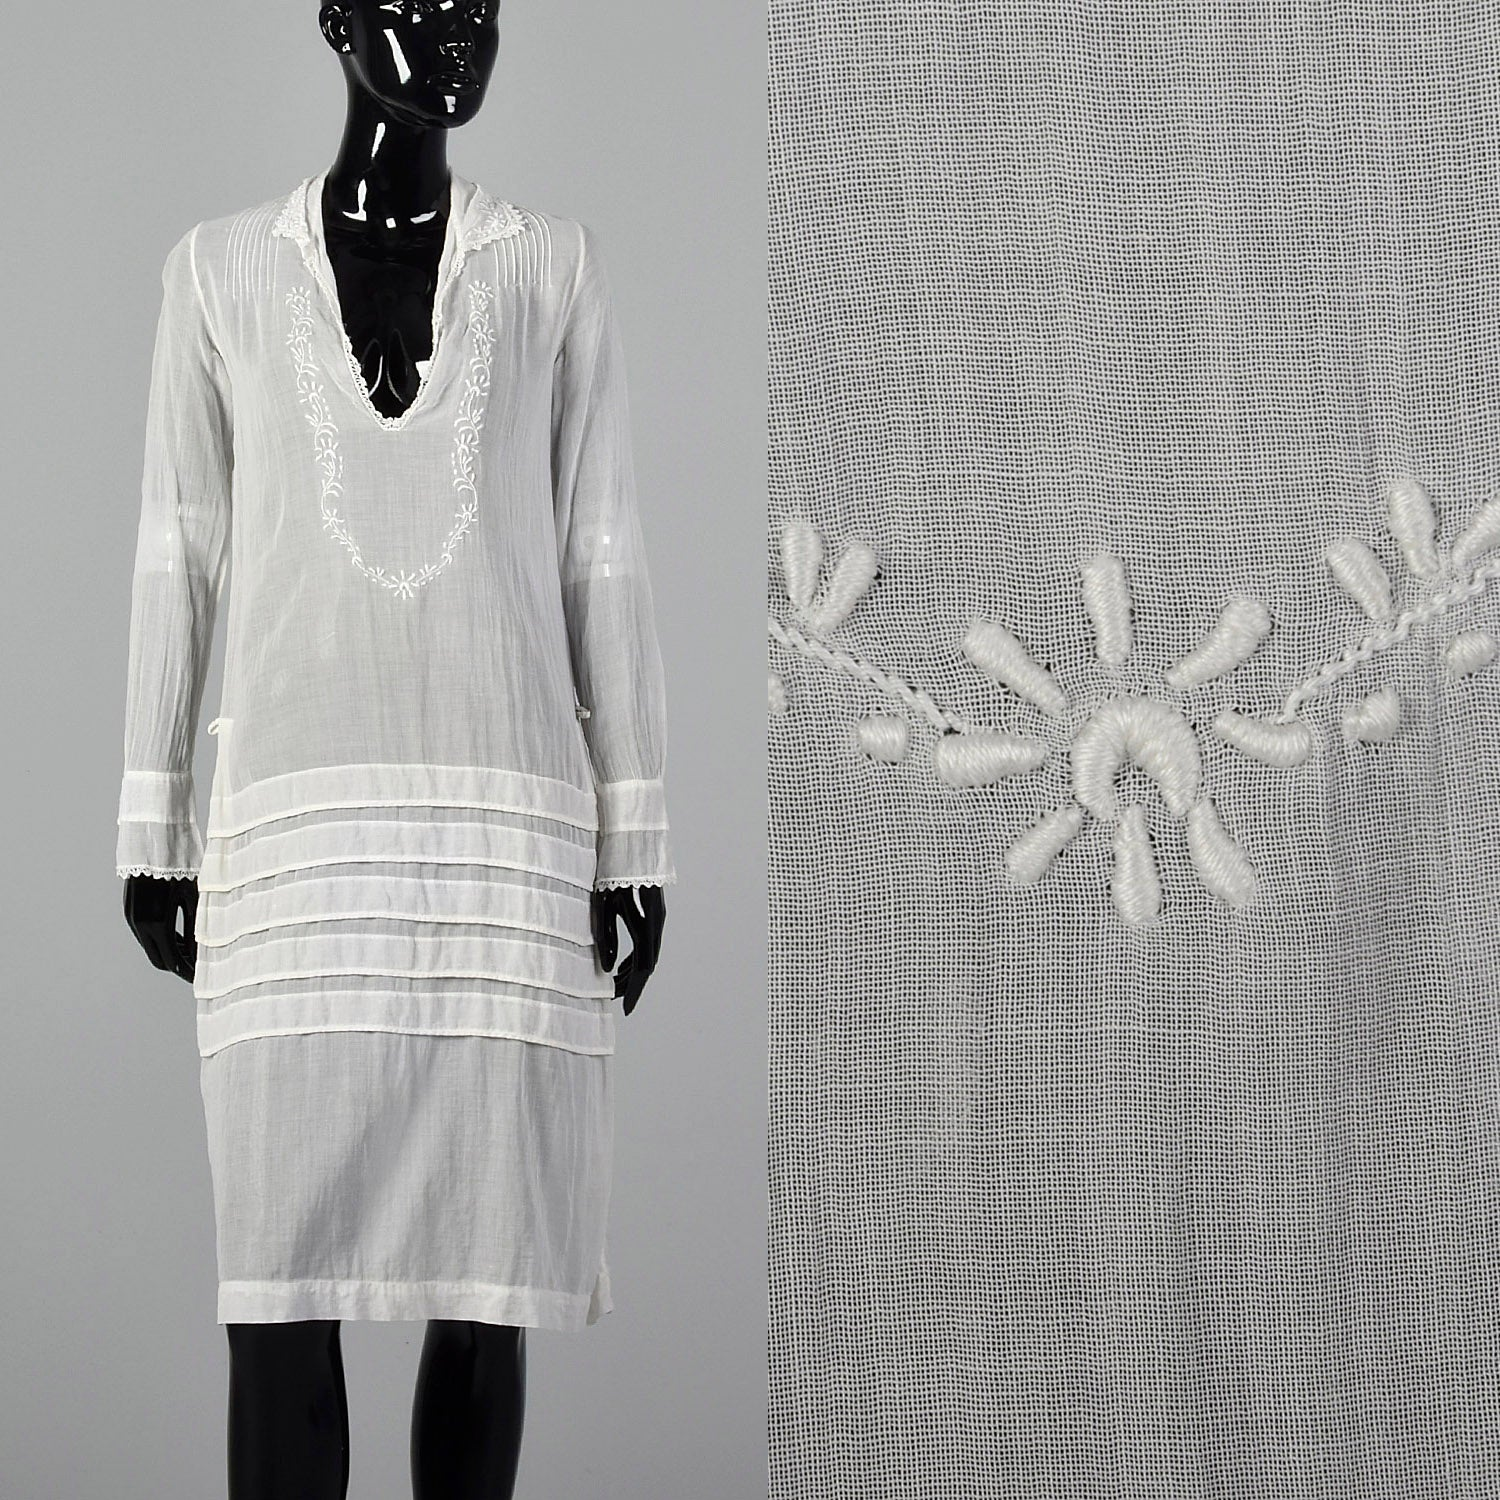 1920s Sheer White Embroidered Cotton Dress